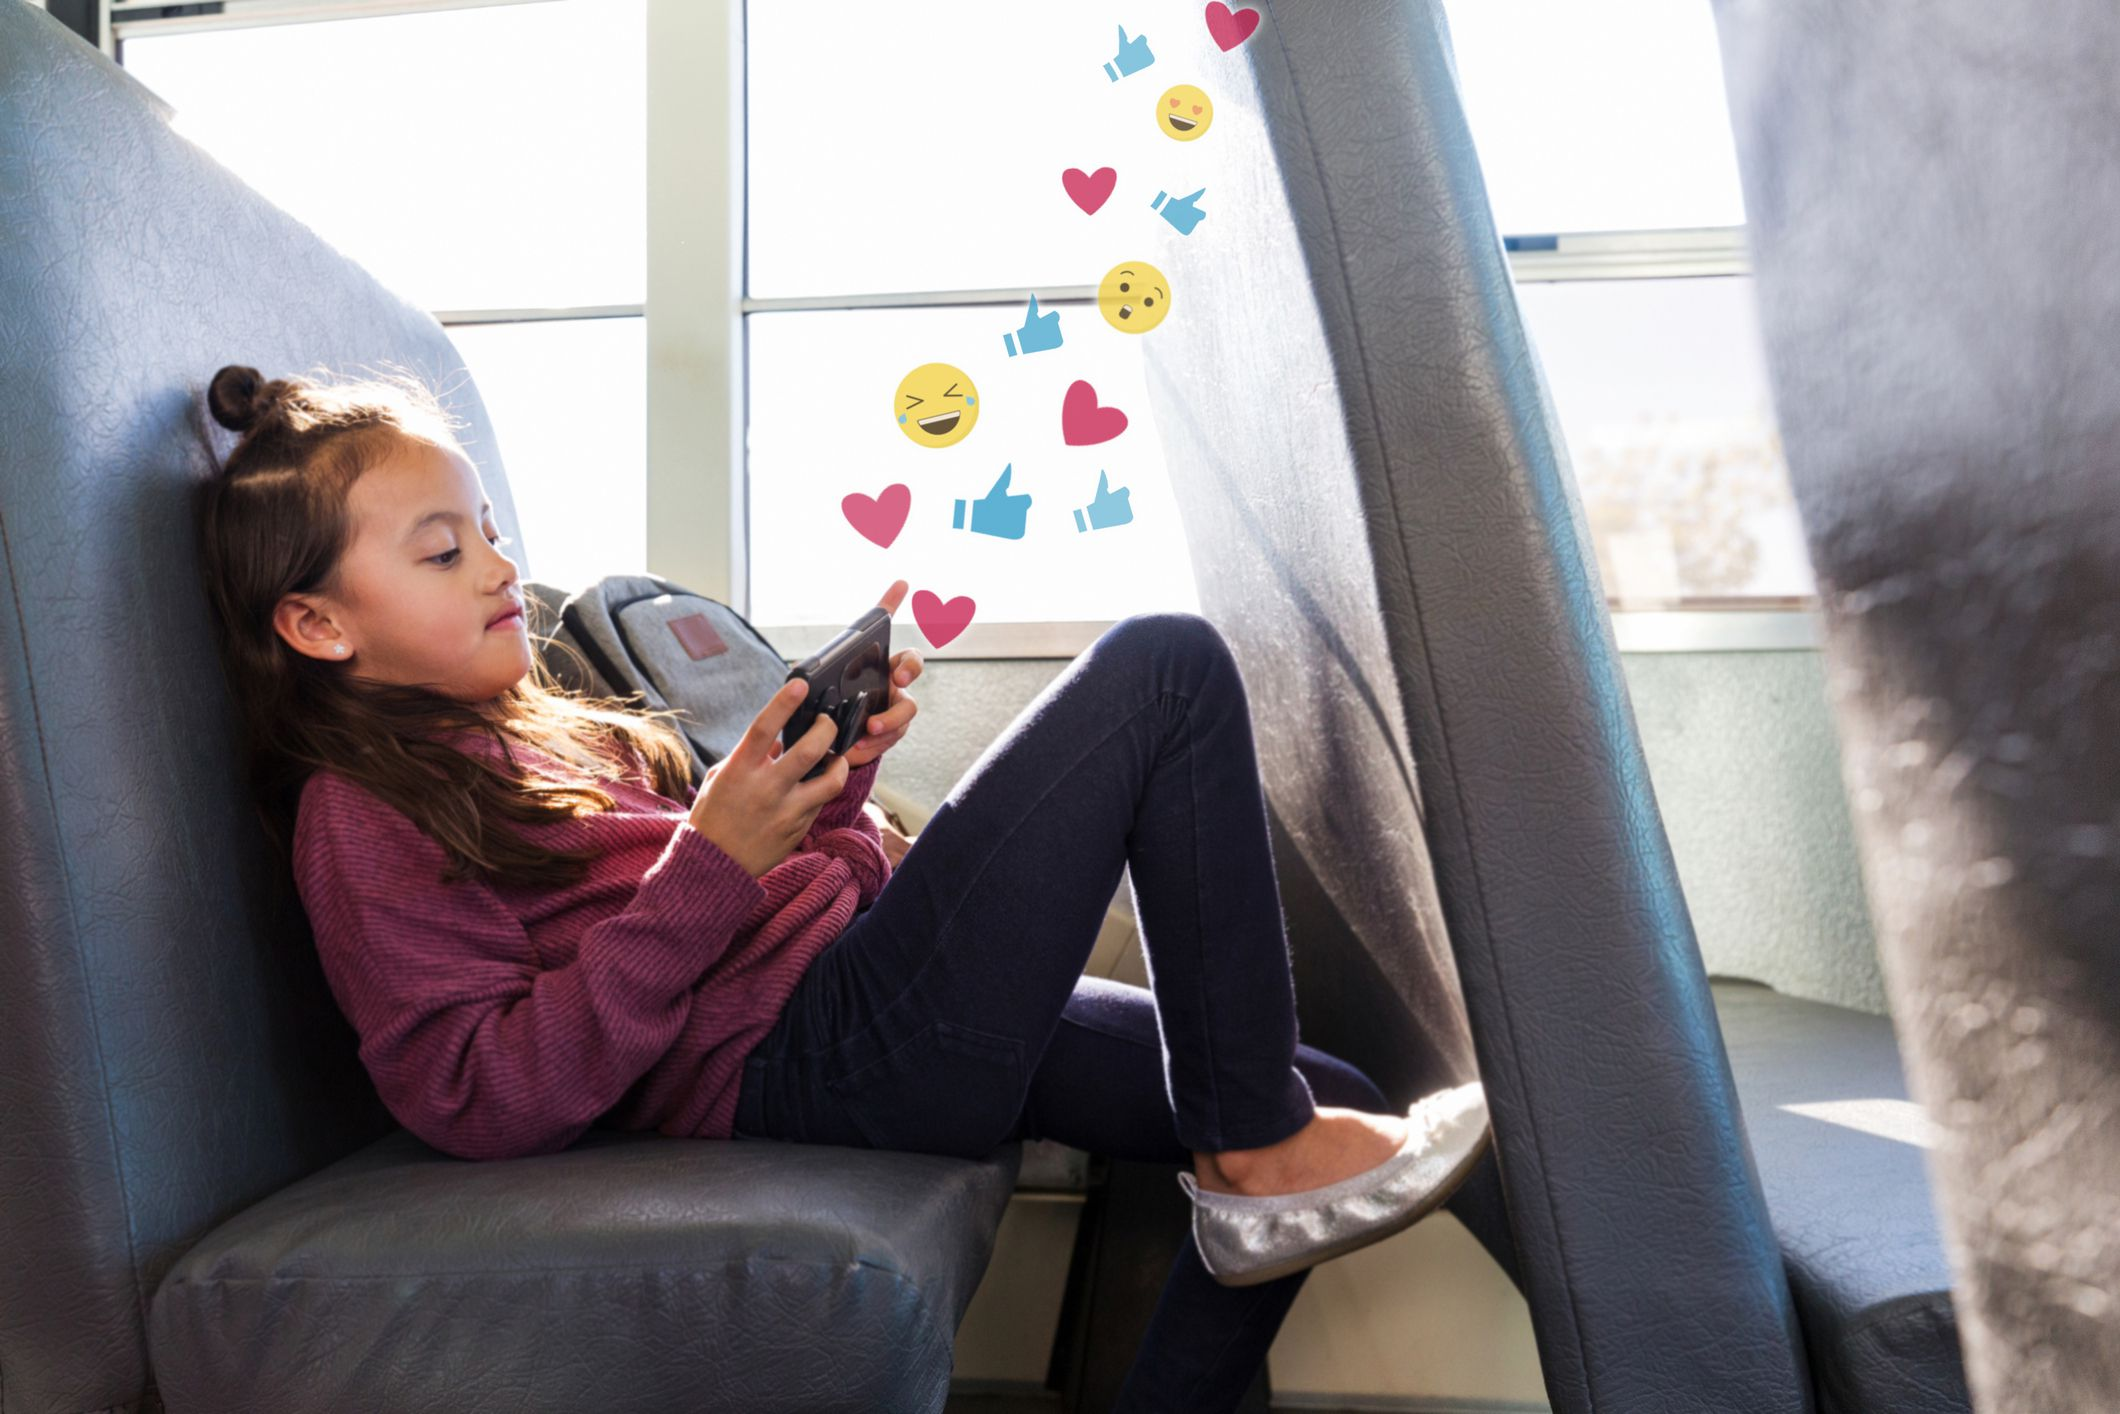 Instagram For Kids Could Work If Done Right, Experts Say